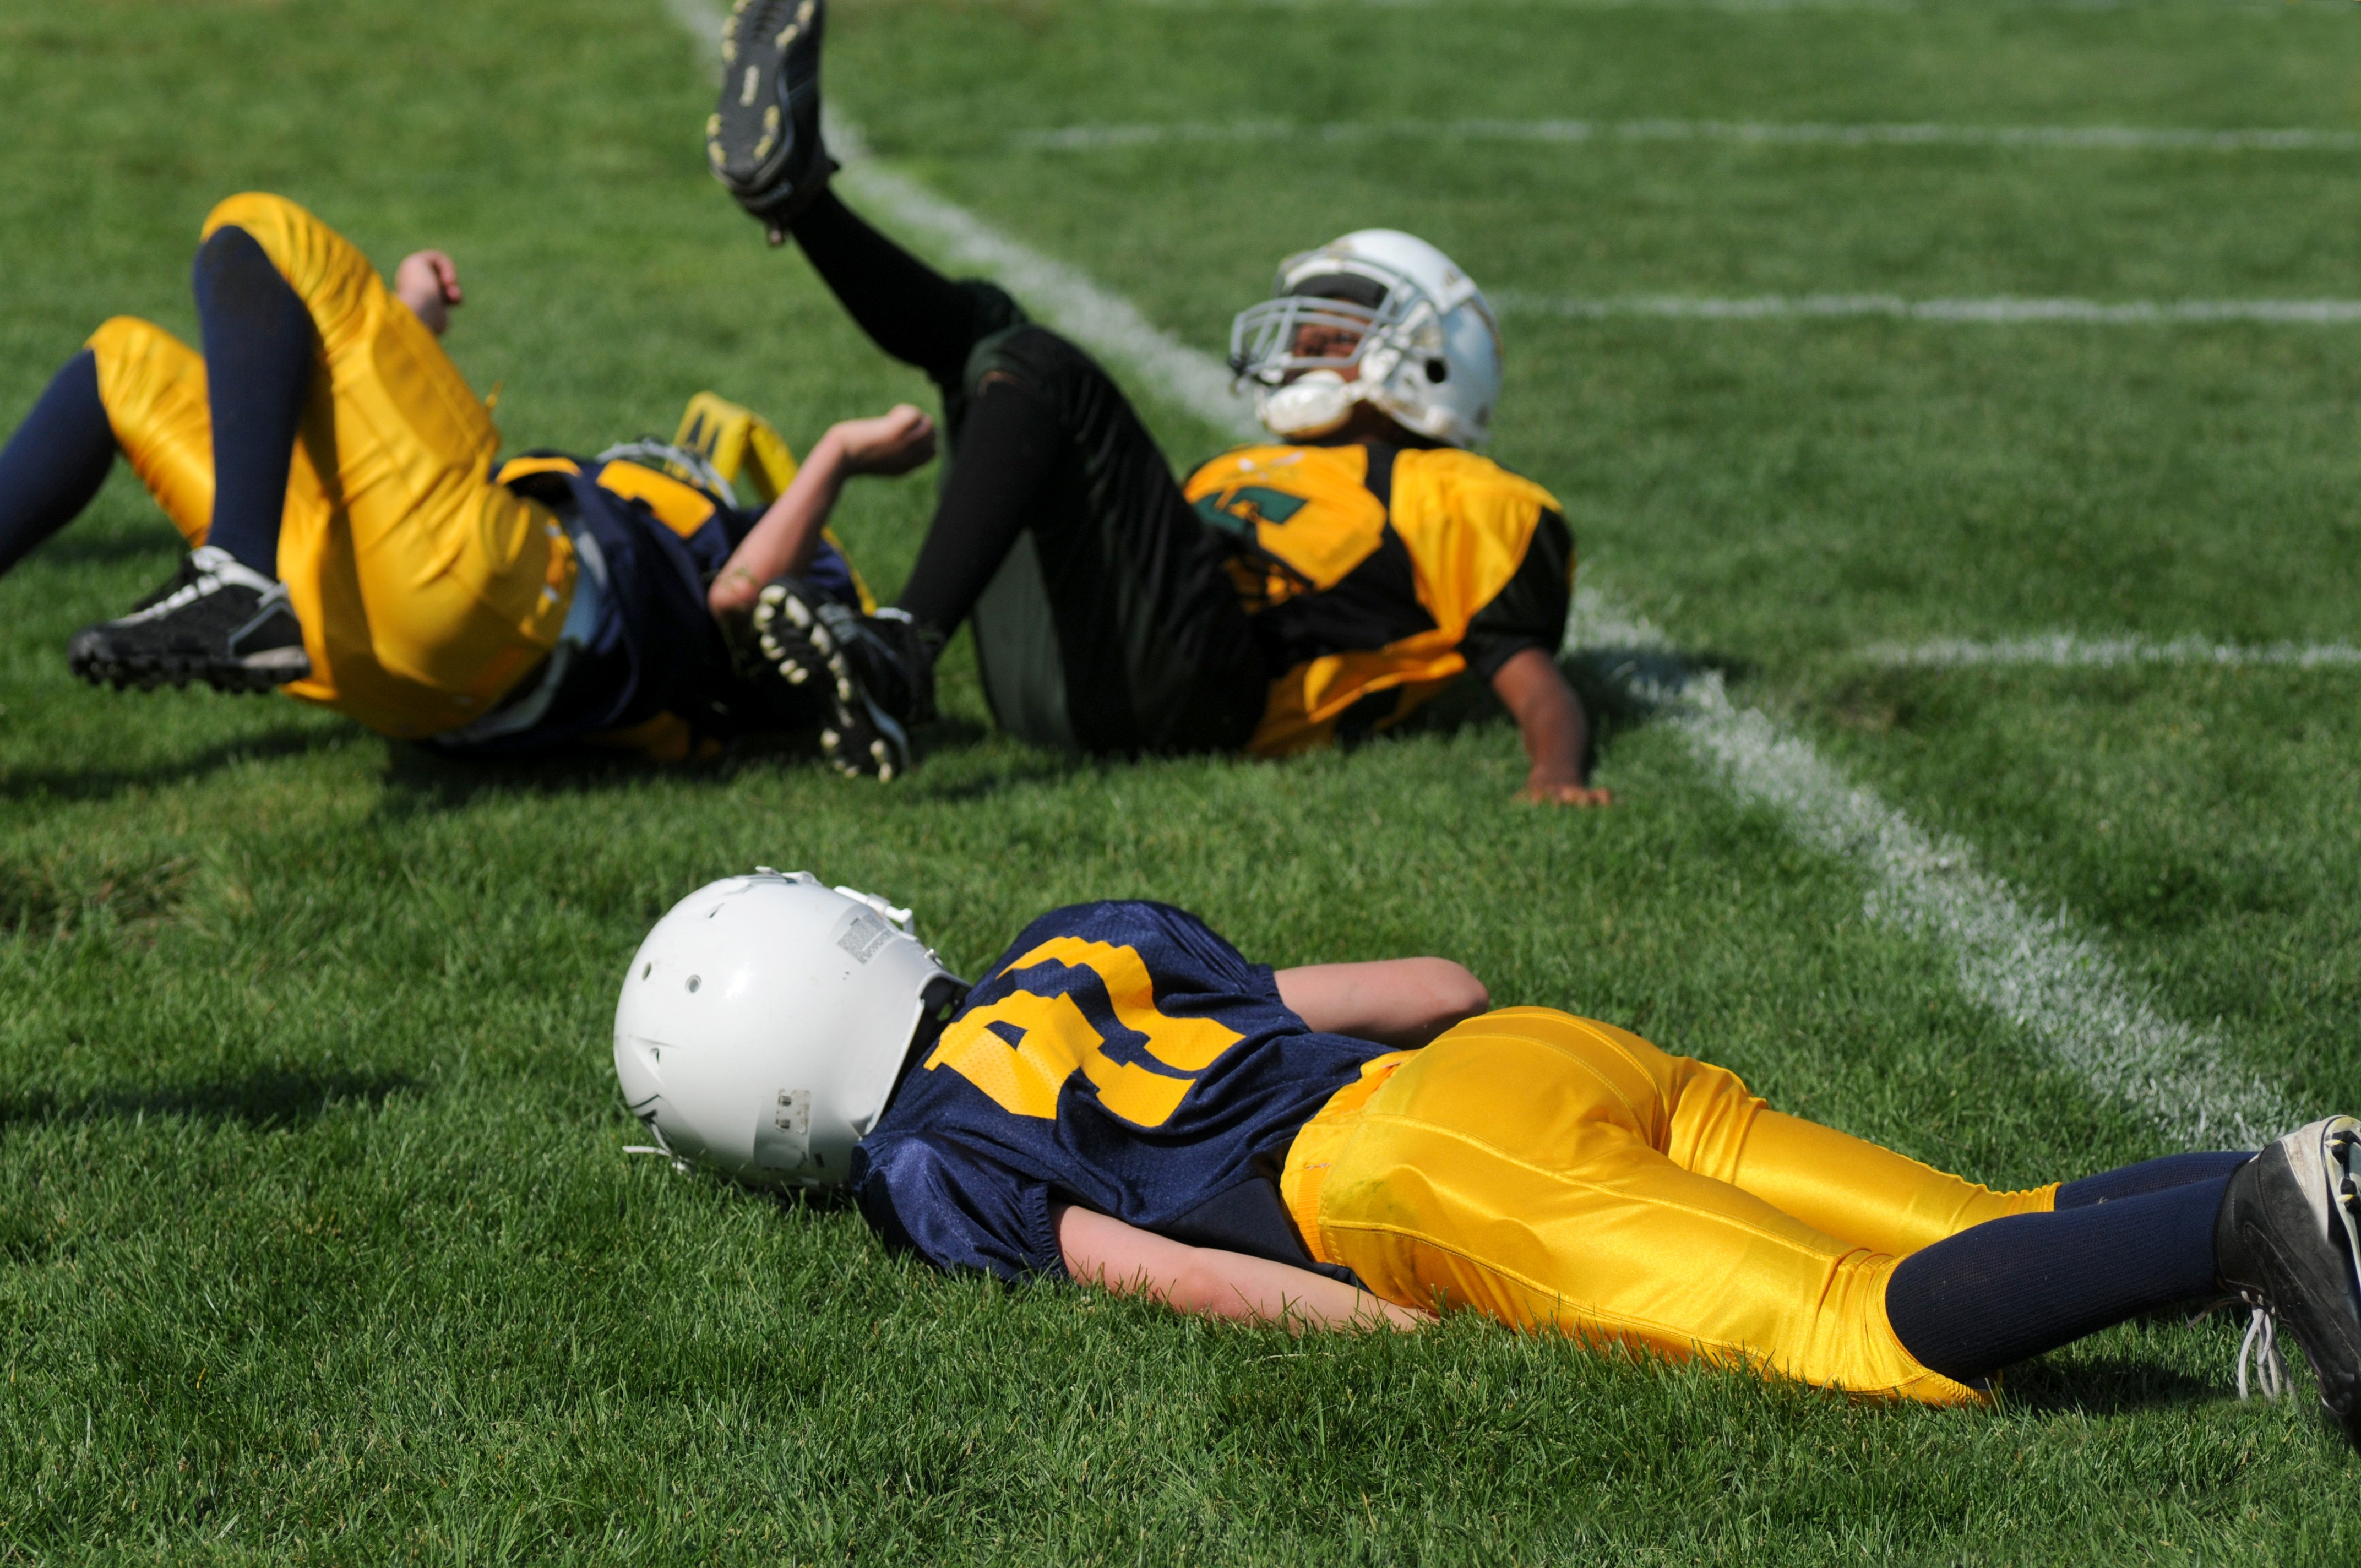 What do they do to see if you have a concussion